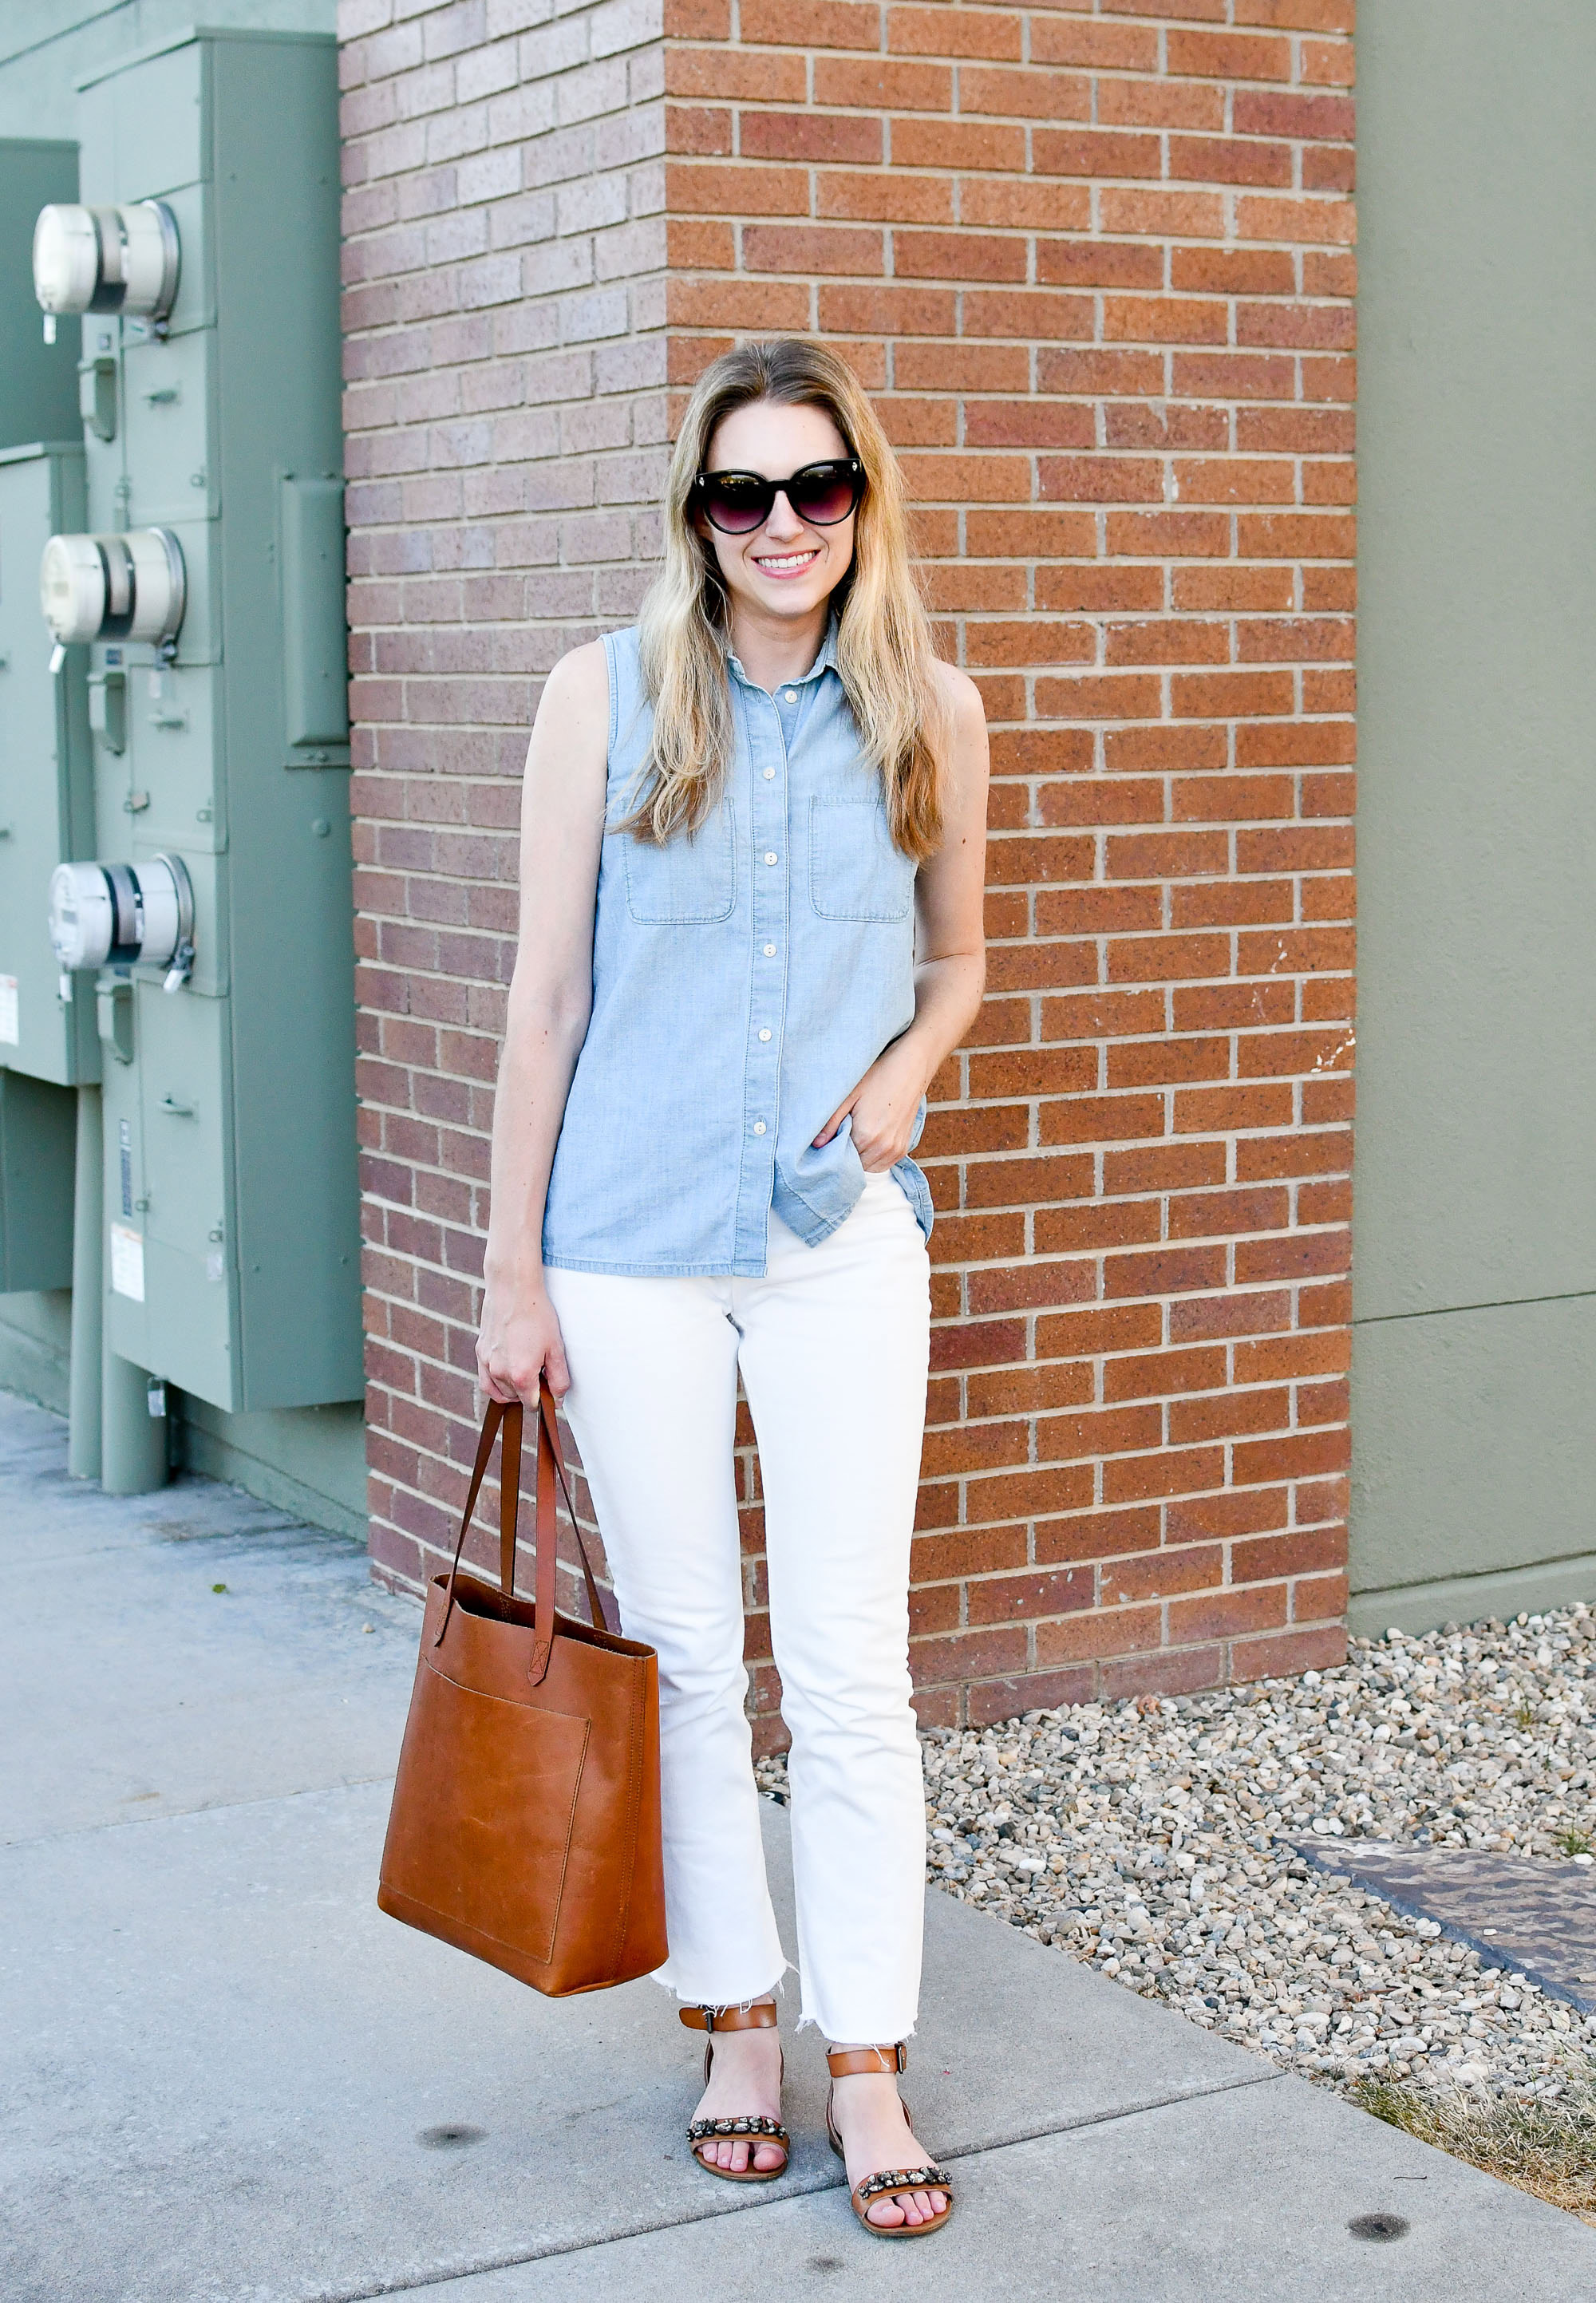 Favorite outfit: Subtle double denim — Cotton Cashmere Cat Hair